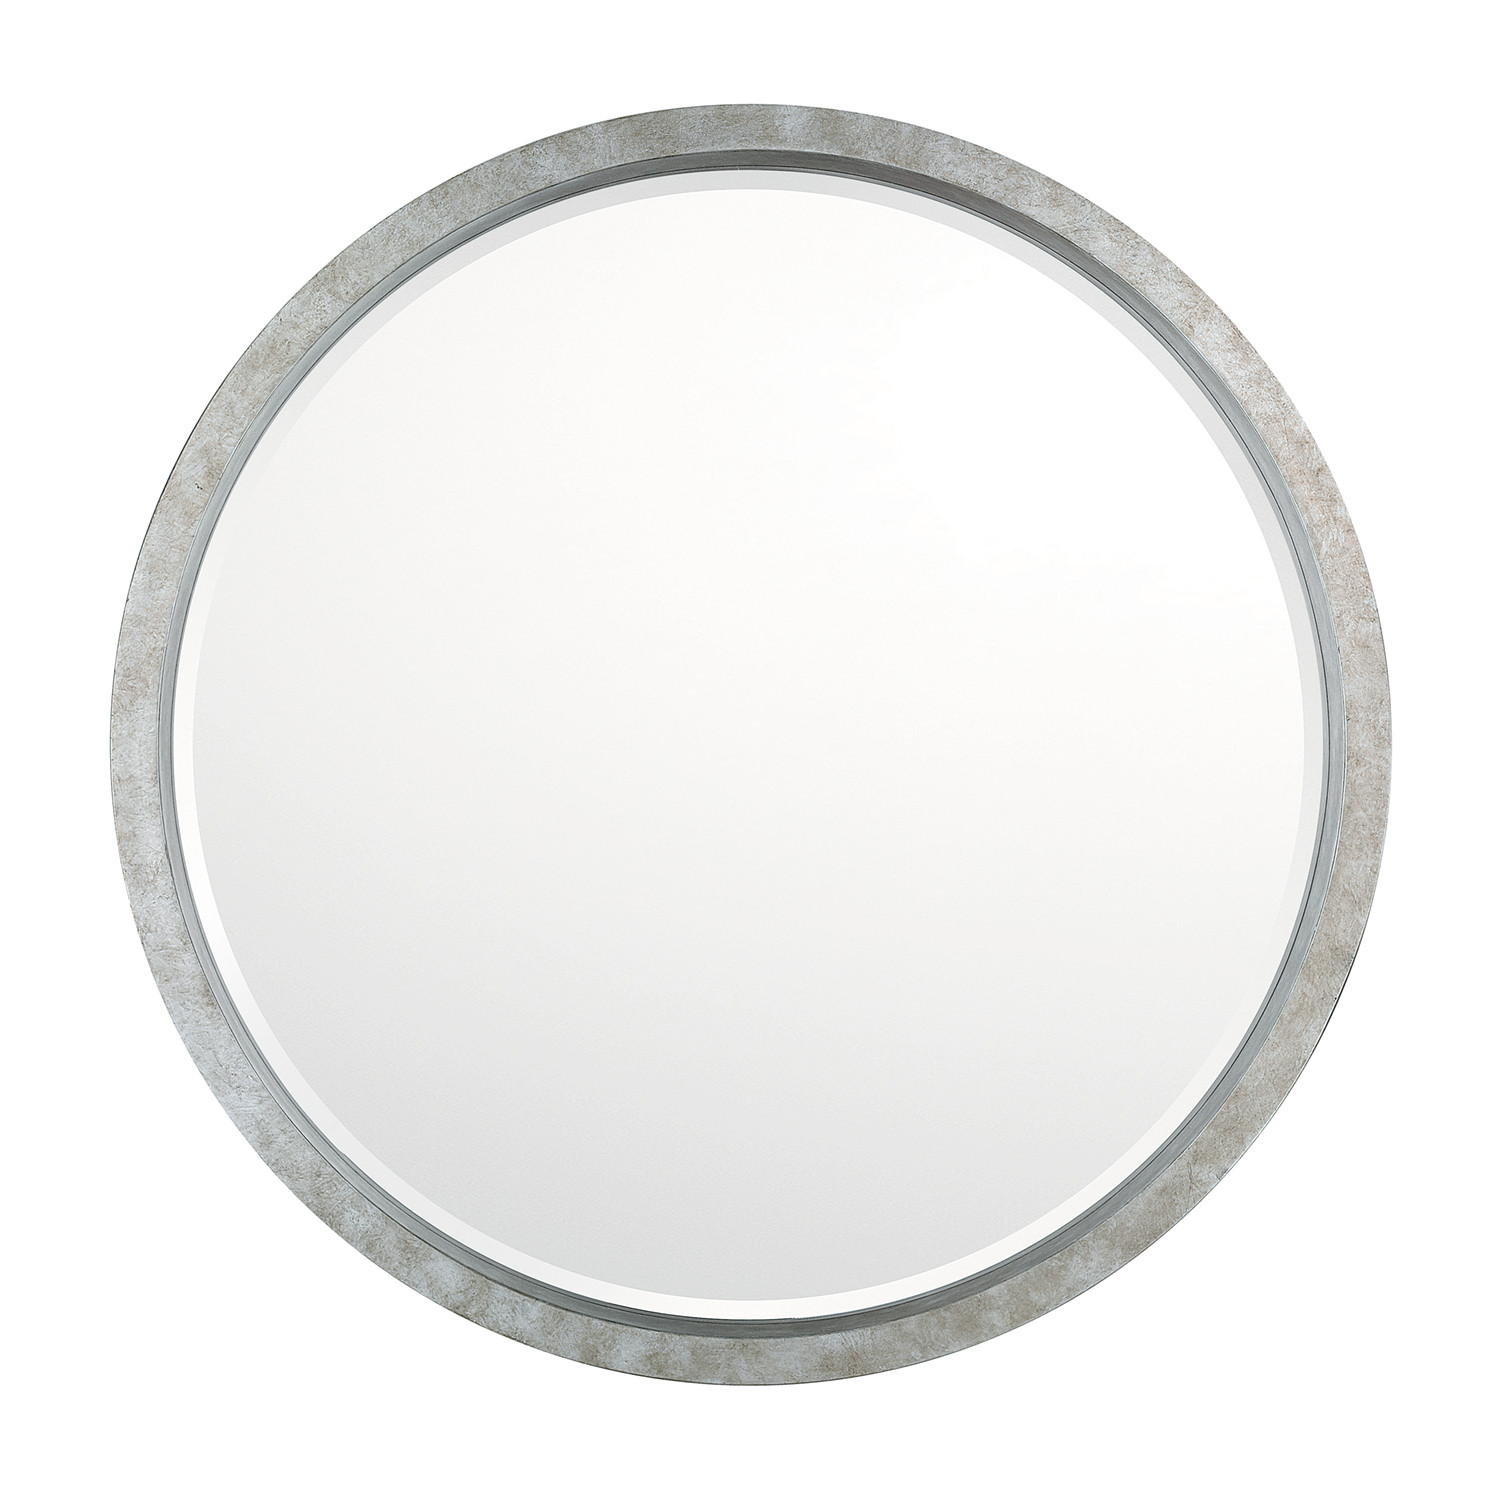 Decorative Mirror from the Mirrors collection by Capital Lighting M323292